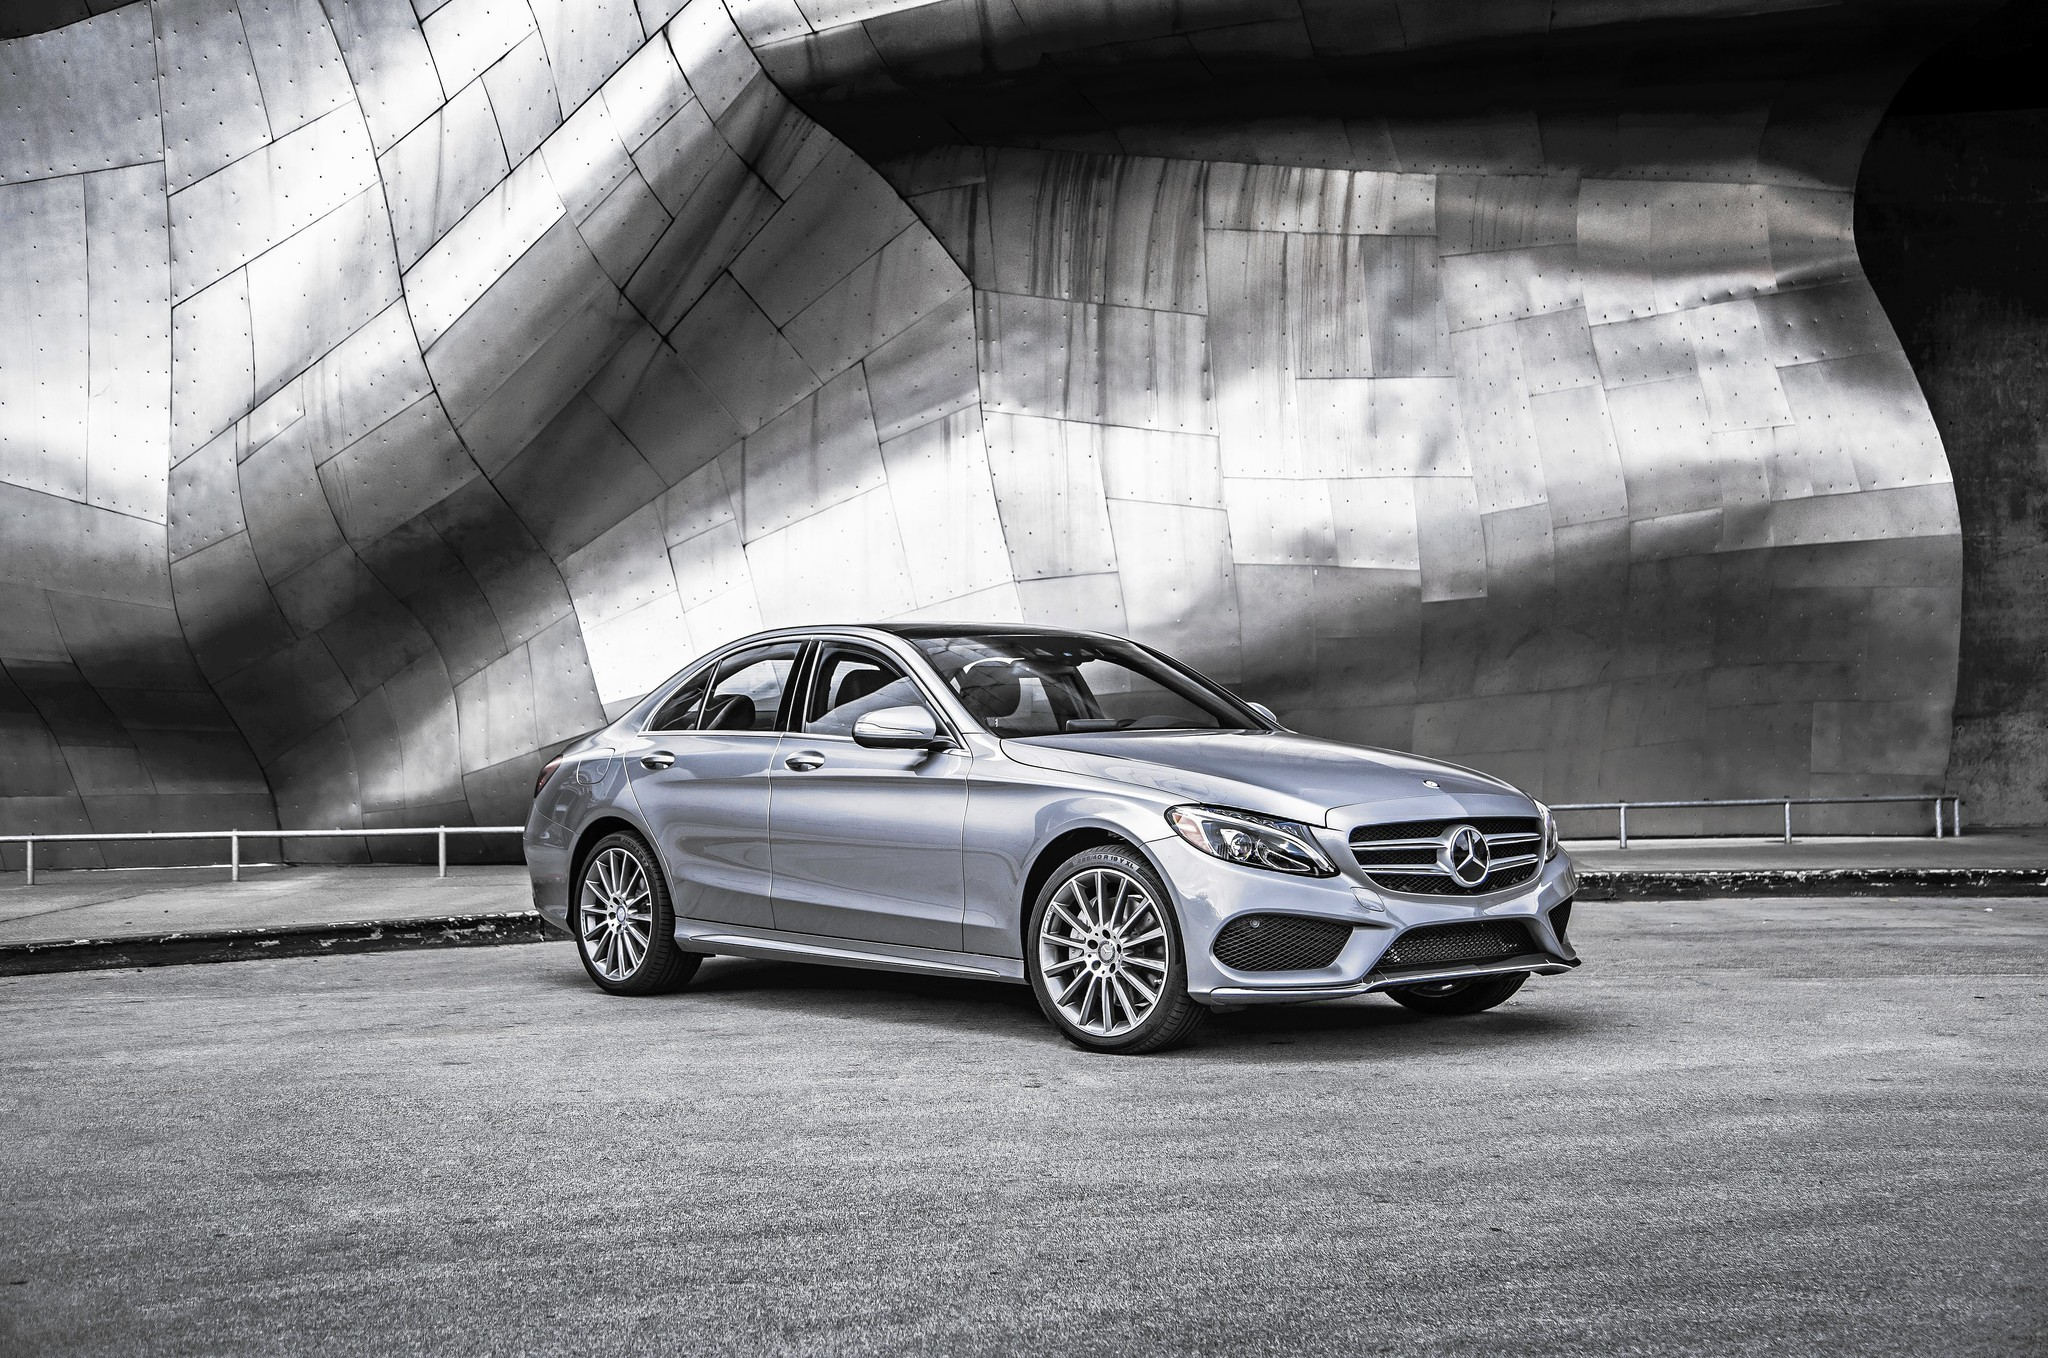 review: mercedes gives new c-class a luxury upgrade, including